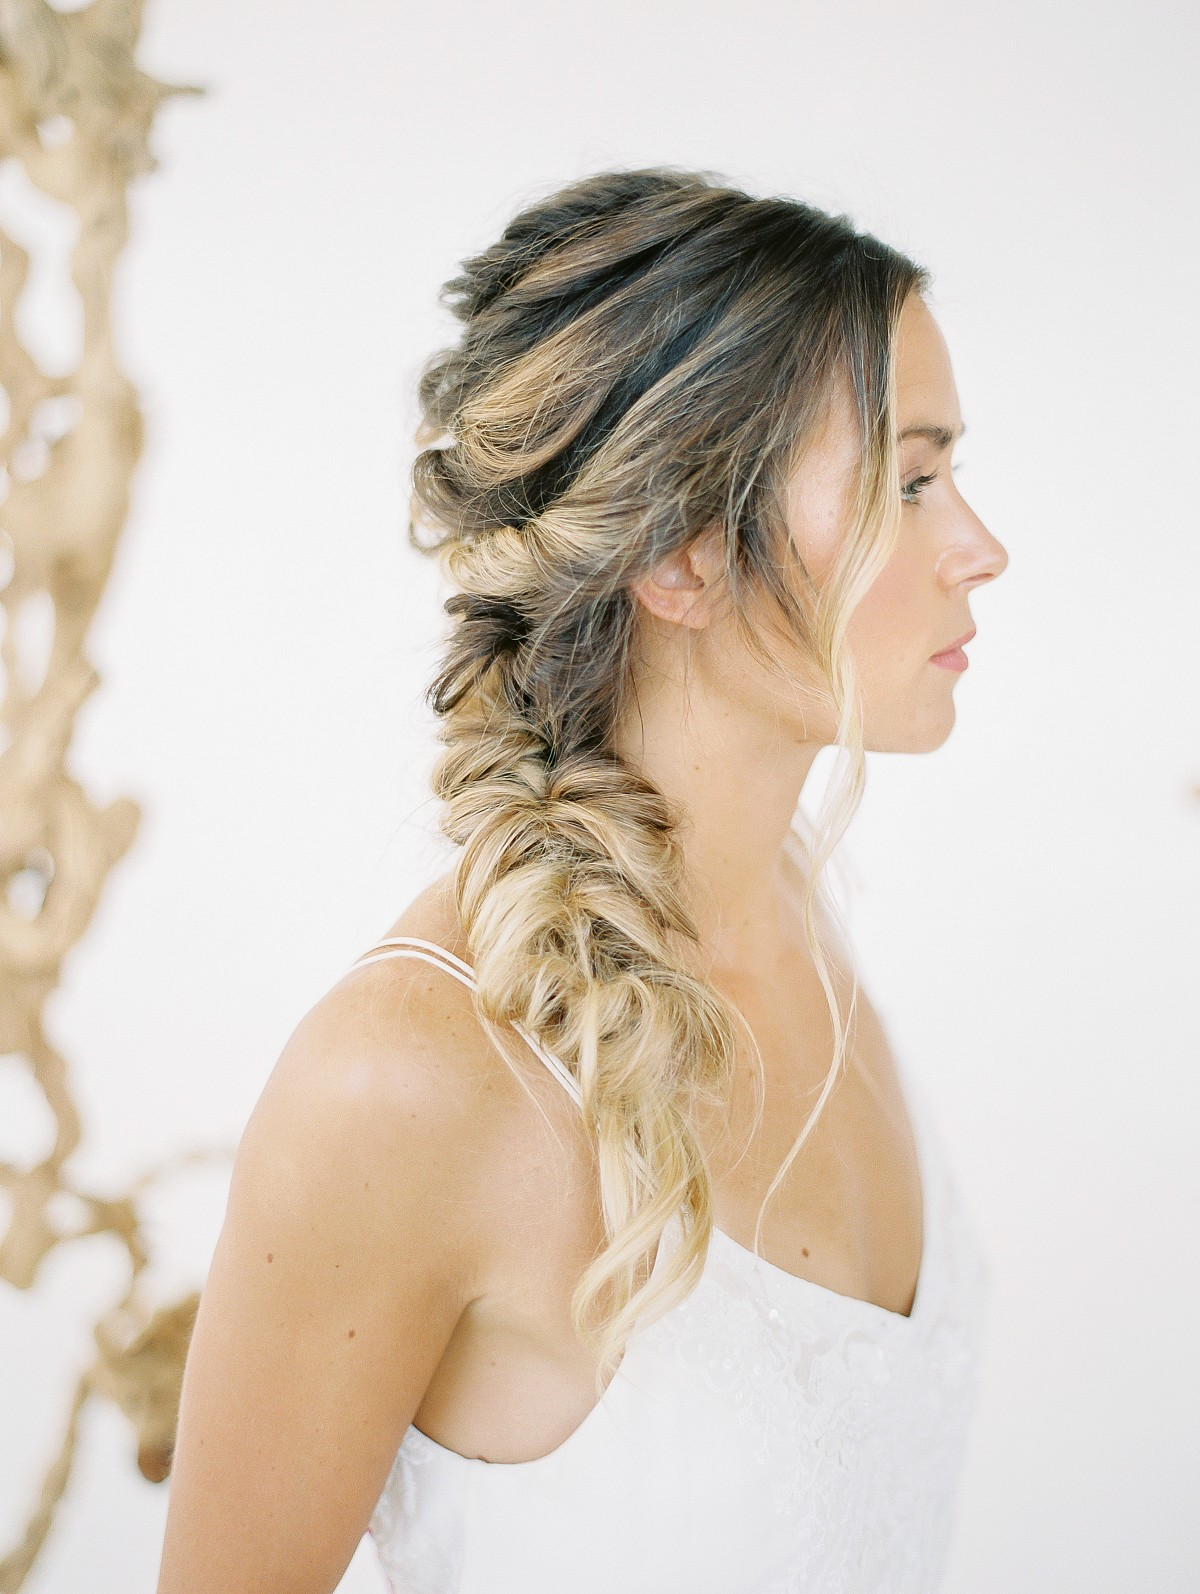 4 Hairstyles for the Fine Art Bride